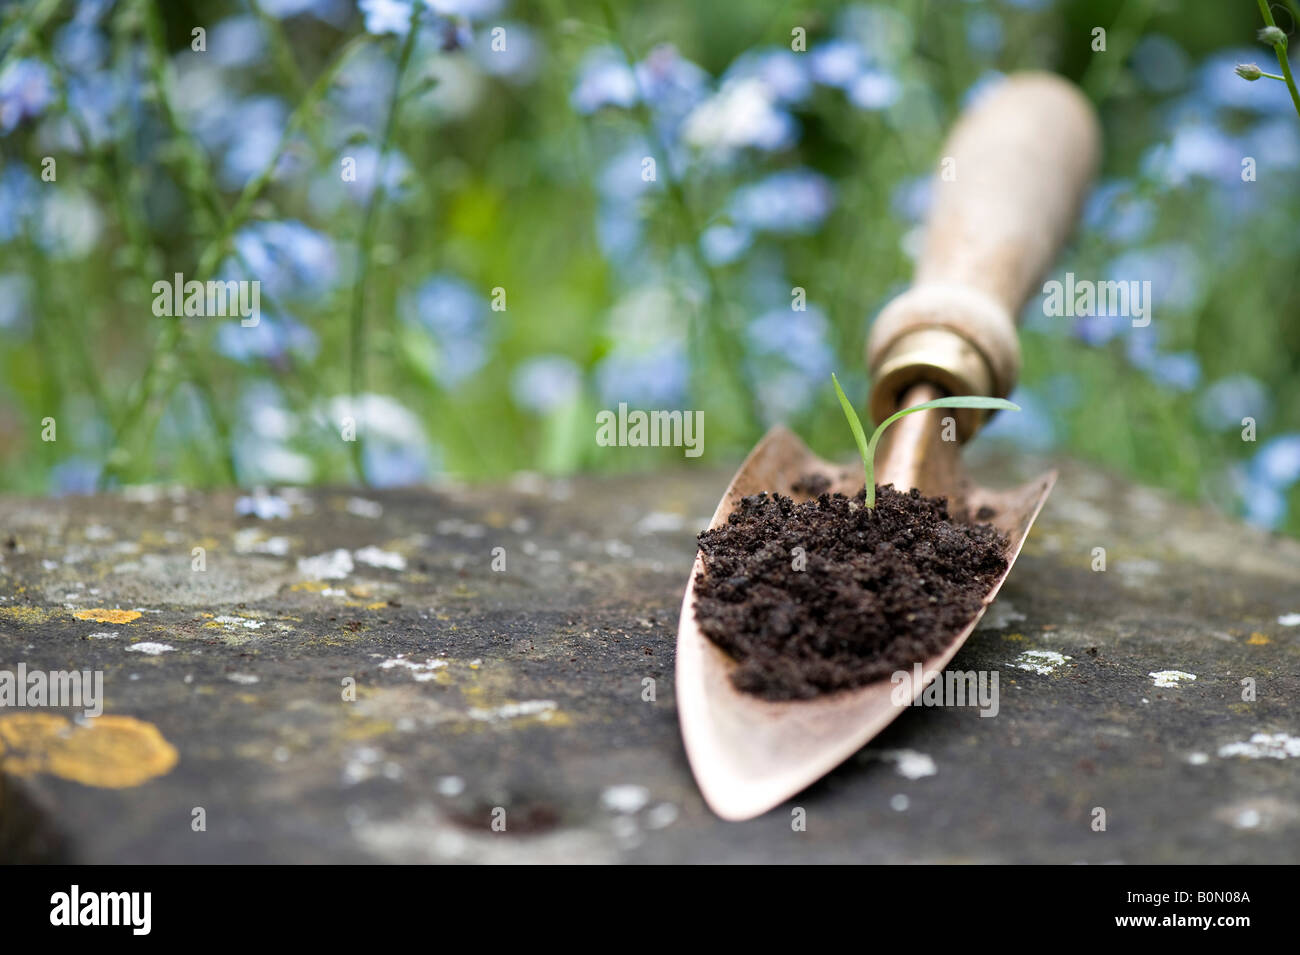 Flower seeding in compost on a copper hand trowel. UK - Stock Image